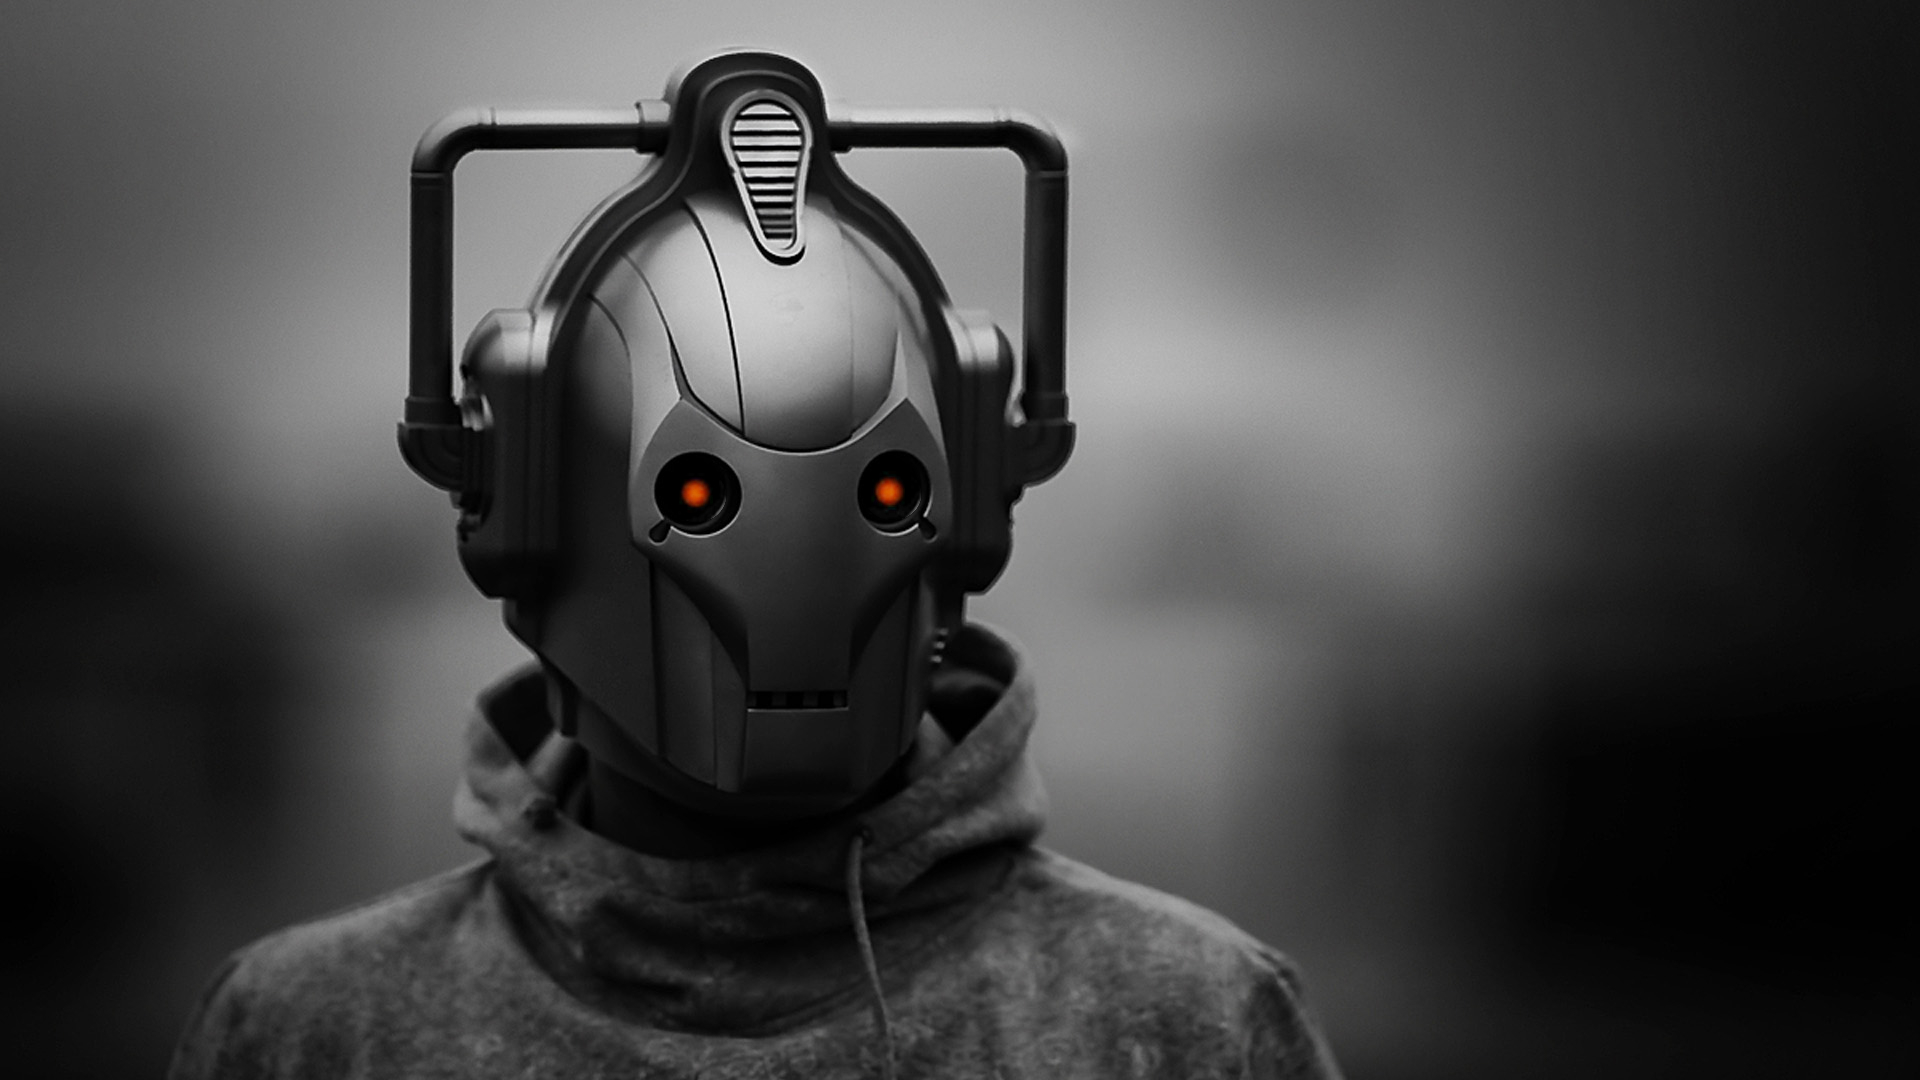 Robot 1080p Wallpapers   Wallpaper High Definition High Quality 1920x1080